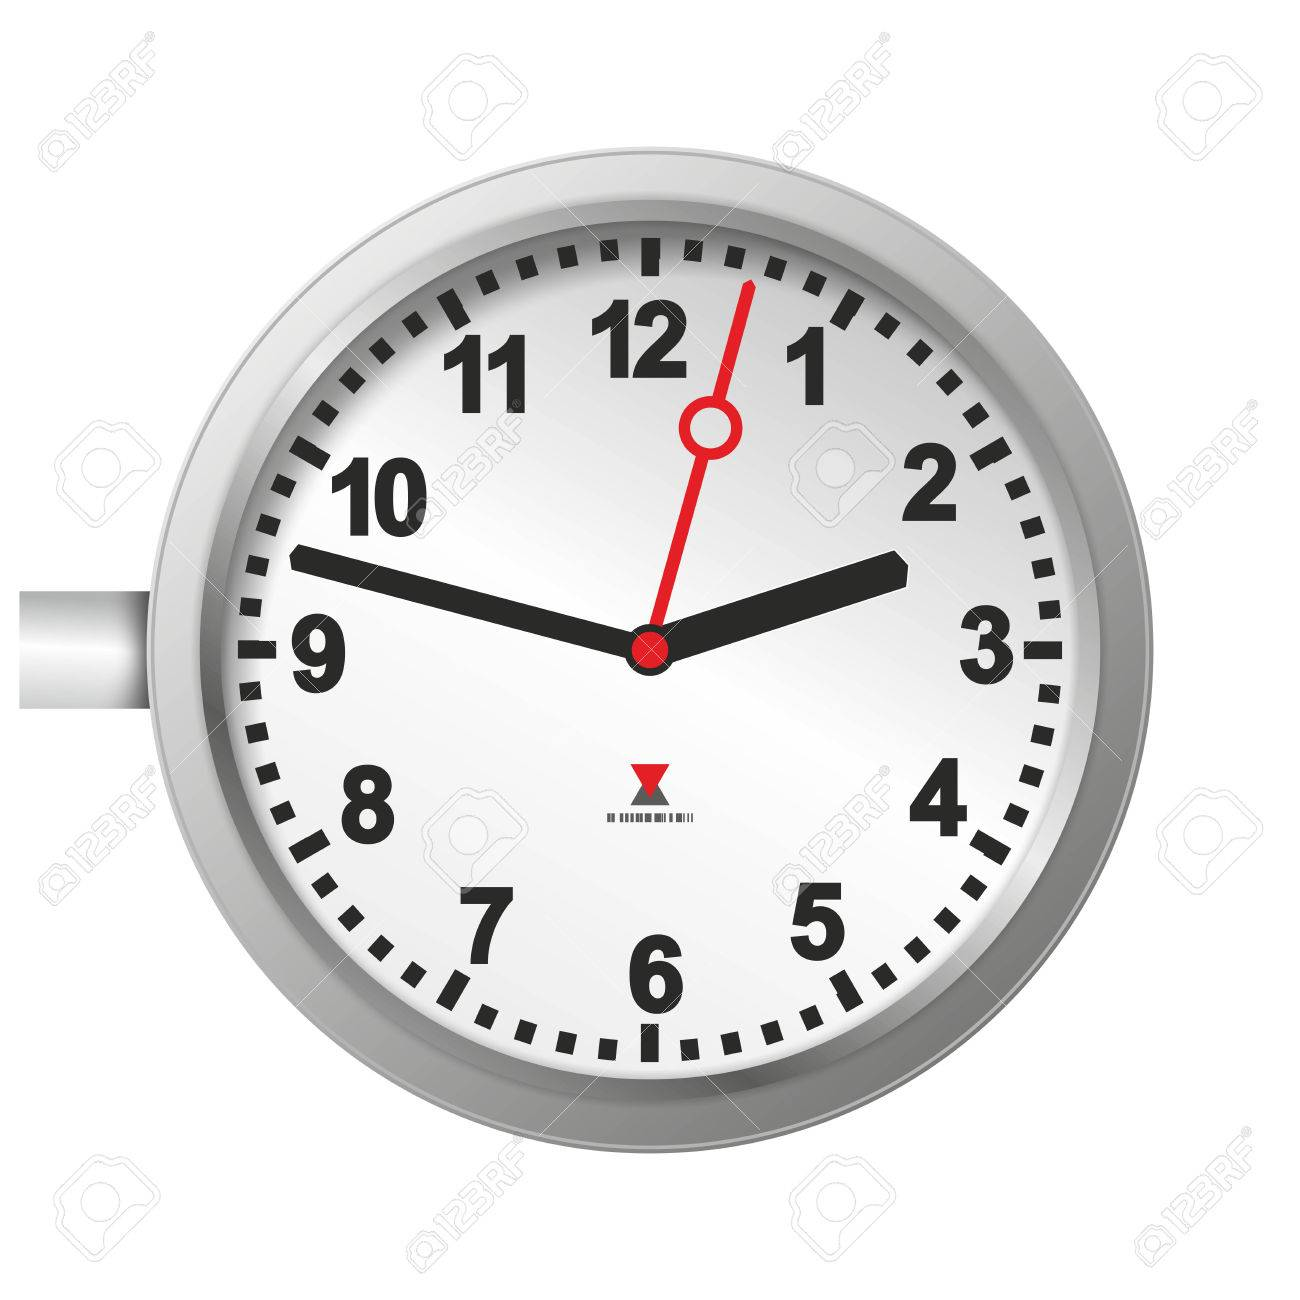 Illustration of a big station clock with second hand stock photo illustration of a big station clock with second hand stock illustration 24358735 amipublicfo Image collections